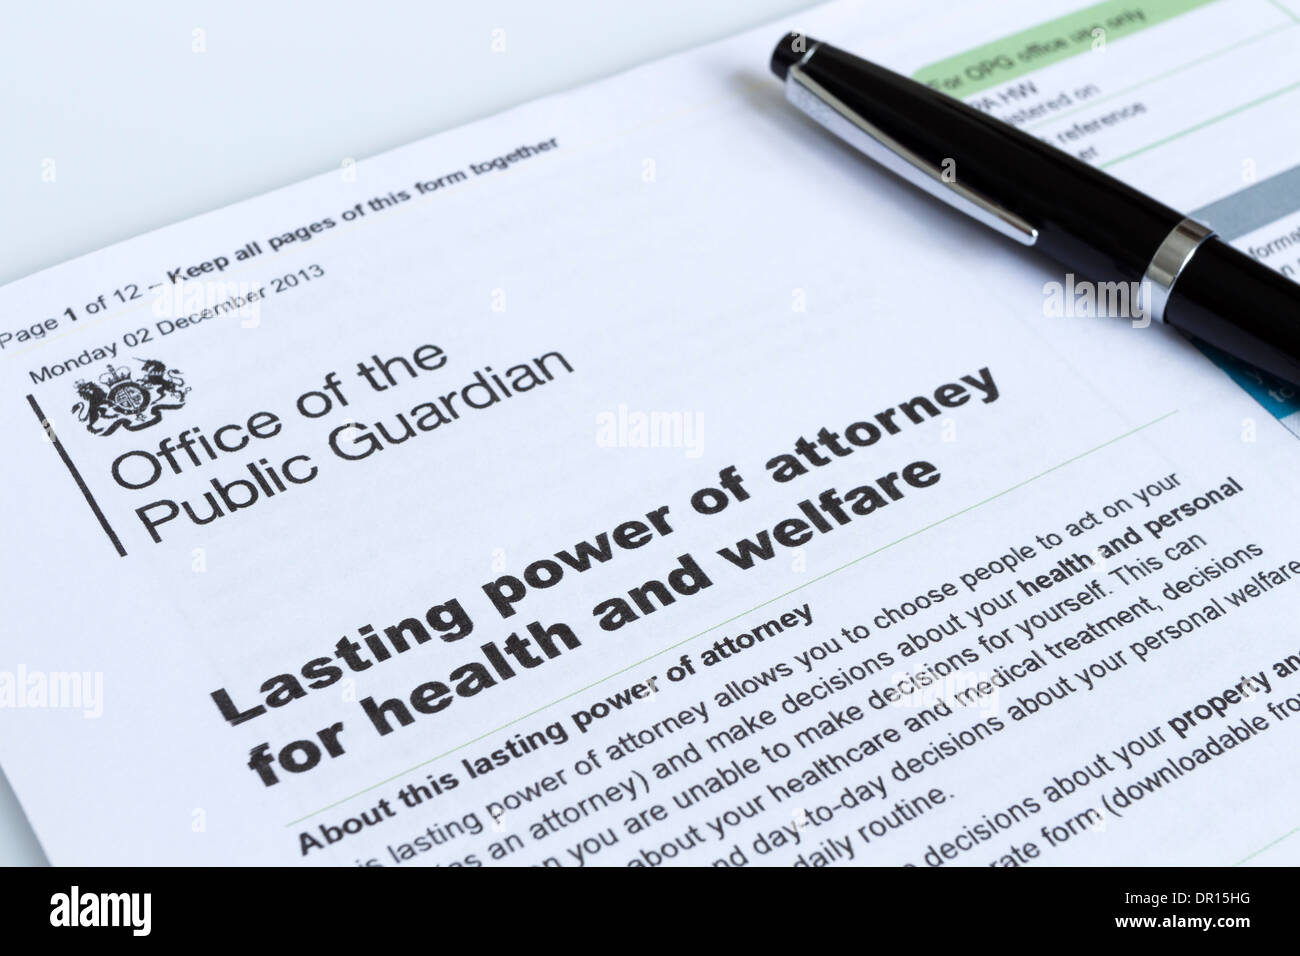 Lasting power of attorney for health and welfare form from the lasting power of attorney for health and welfare form from the office of the public guardian uk solutioingenieria